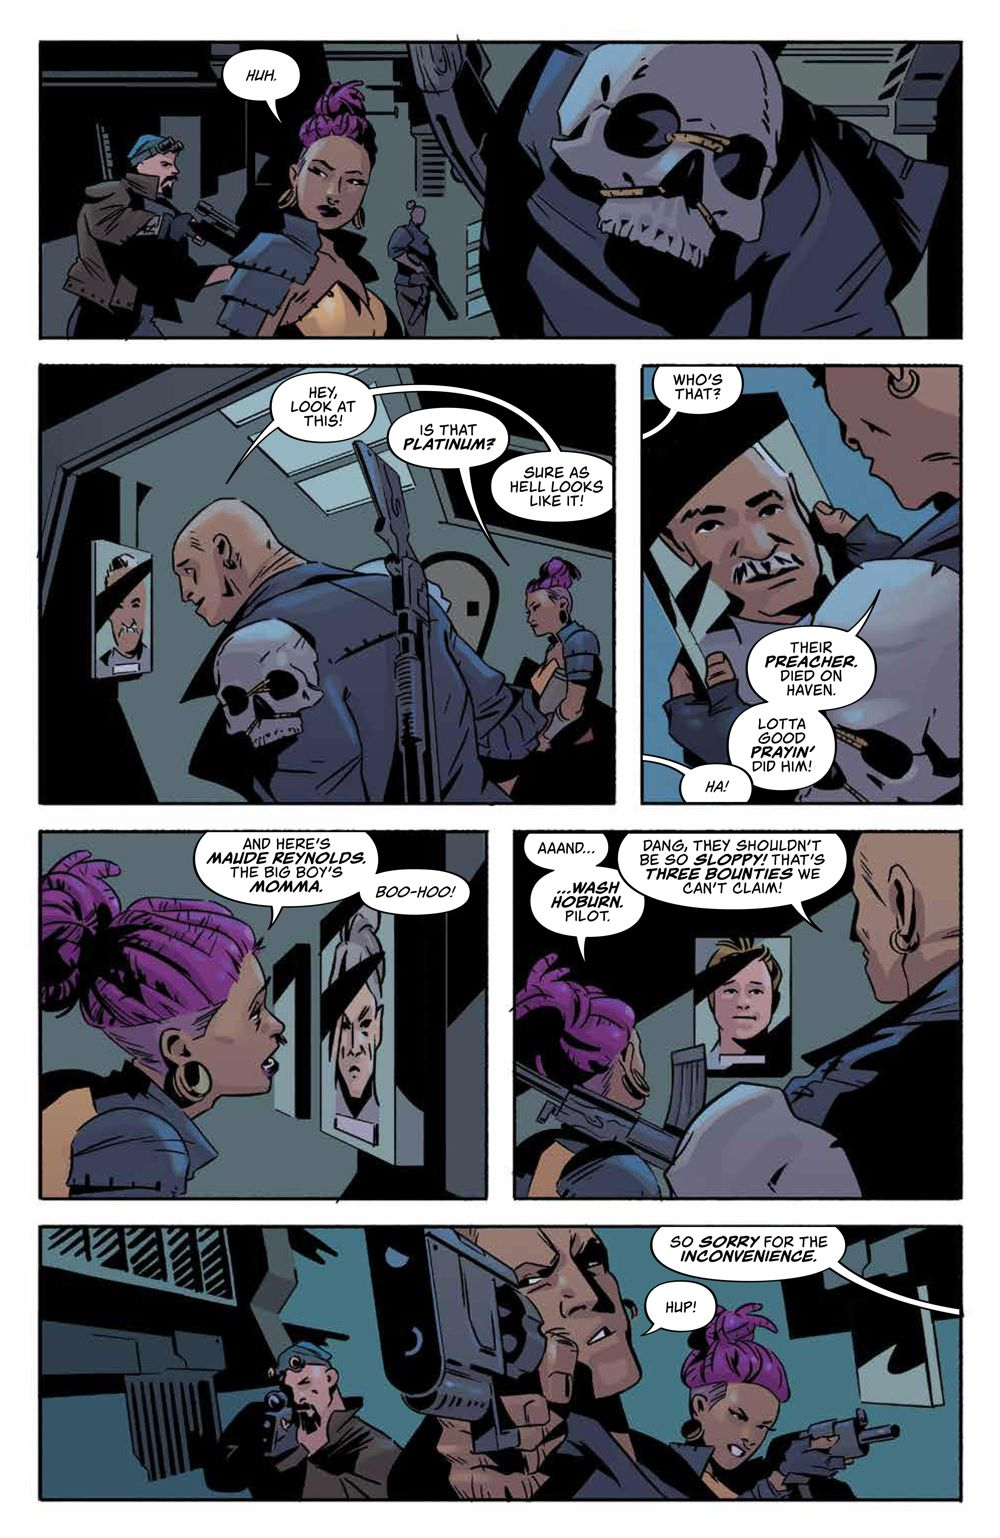 Firefly_ReturnToEarth_v1_HC_PRESS_13 ComicList Previews: FIREFLY RETURN TO THE EARTH THAT WAS VOLUME 1 HC